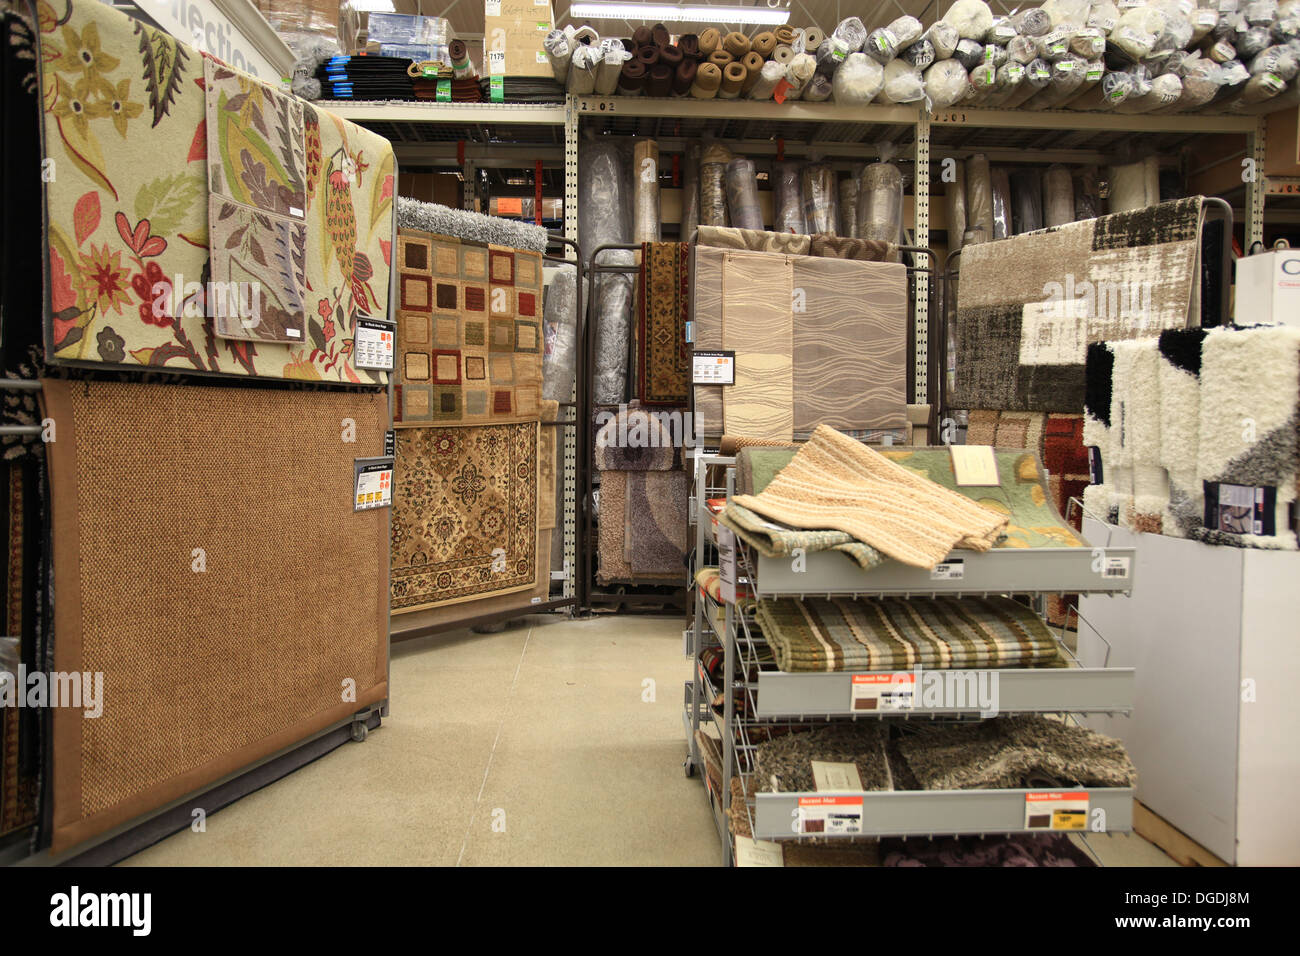 Home Depot Kitchener Ontario Canada